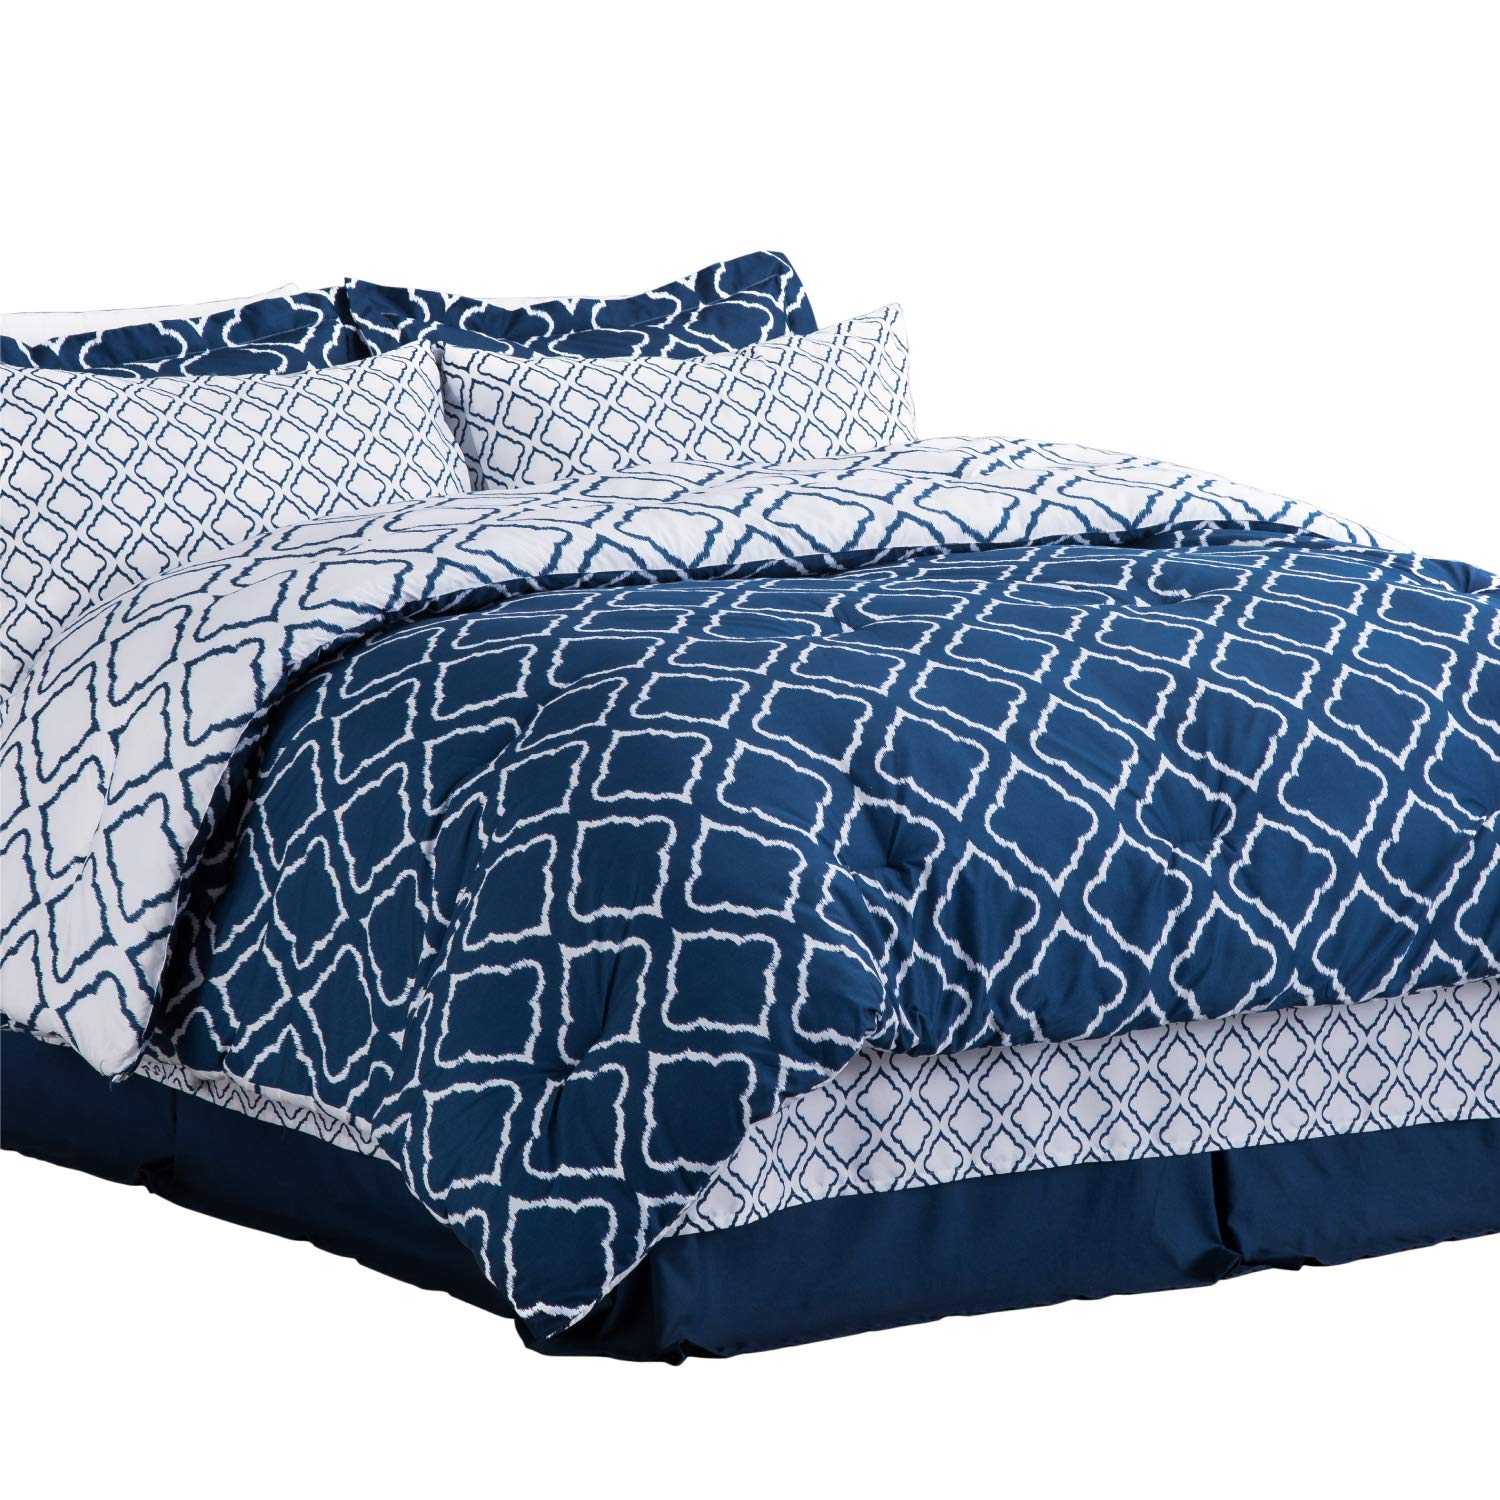 Bedsure 8-Piece Bed-in-A-Bag Queen Size (88X88 inches), Navy Blue Down Alternative Comforter Set (Comforter, 2 Pillow Shams, Flat Sheet, Fitted Sheet, Bed Skirt, 2 Pillowcases)